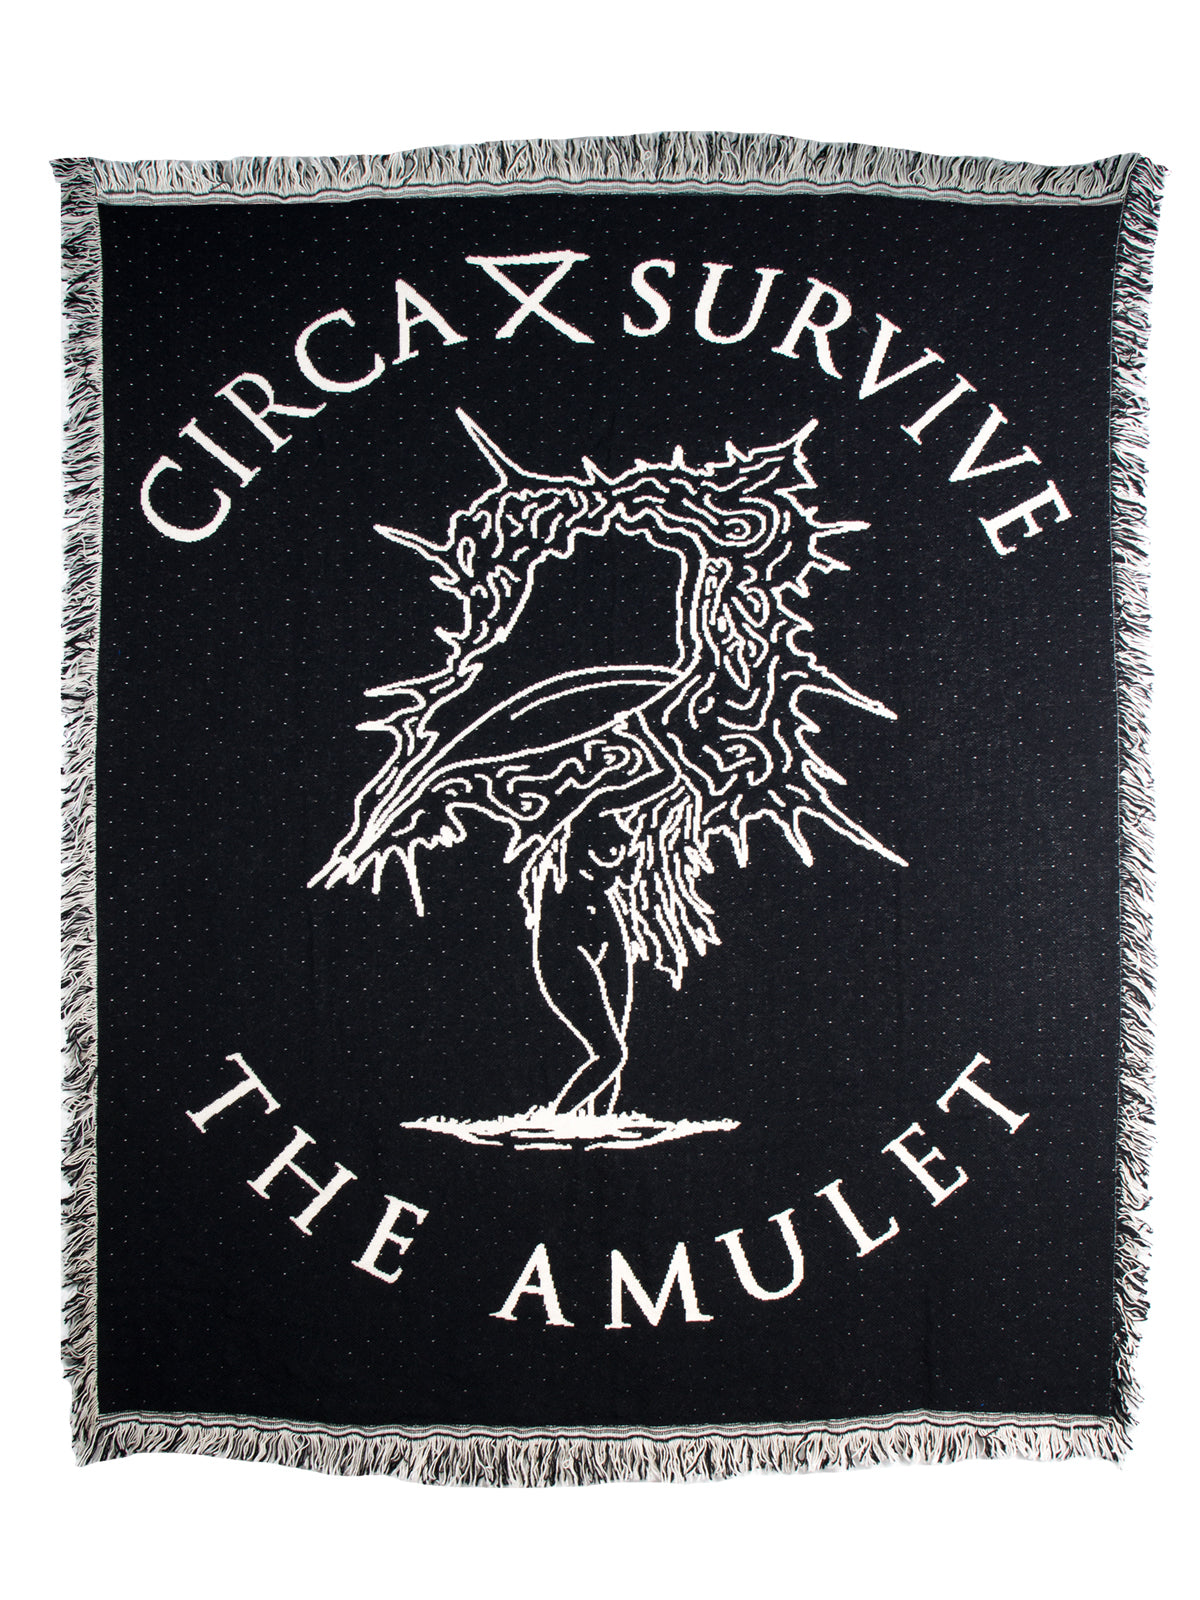 Circa Survive - The Amulet Woven Blanket